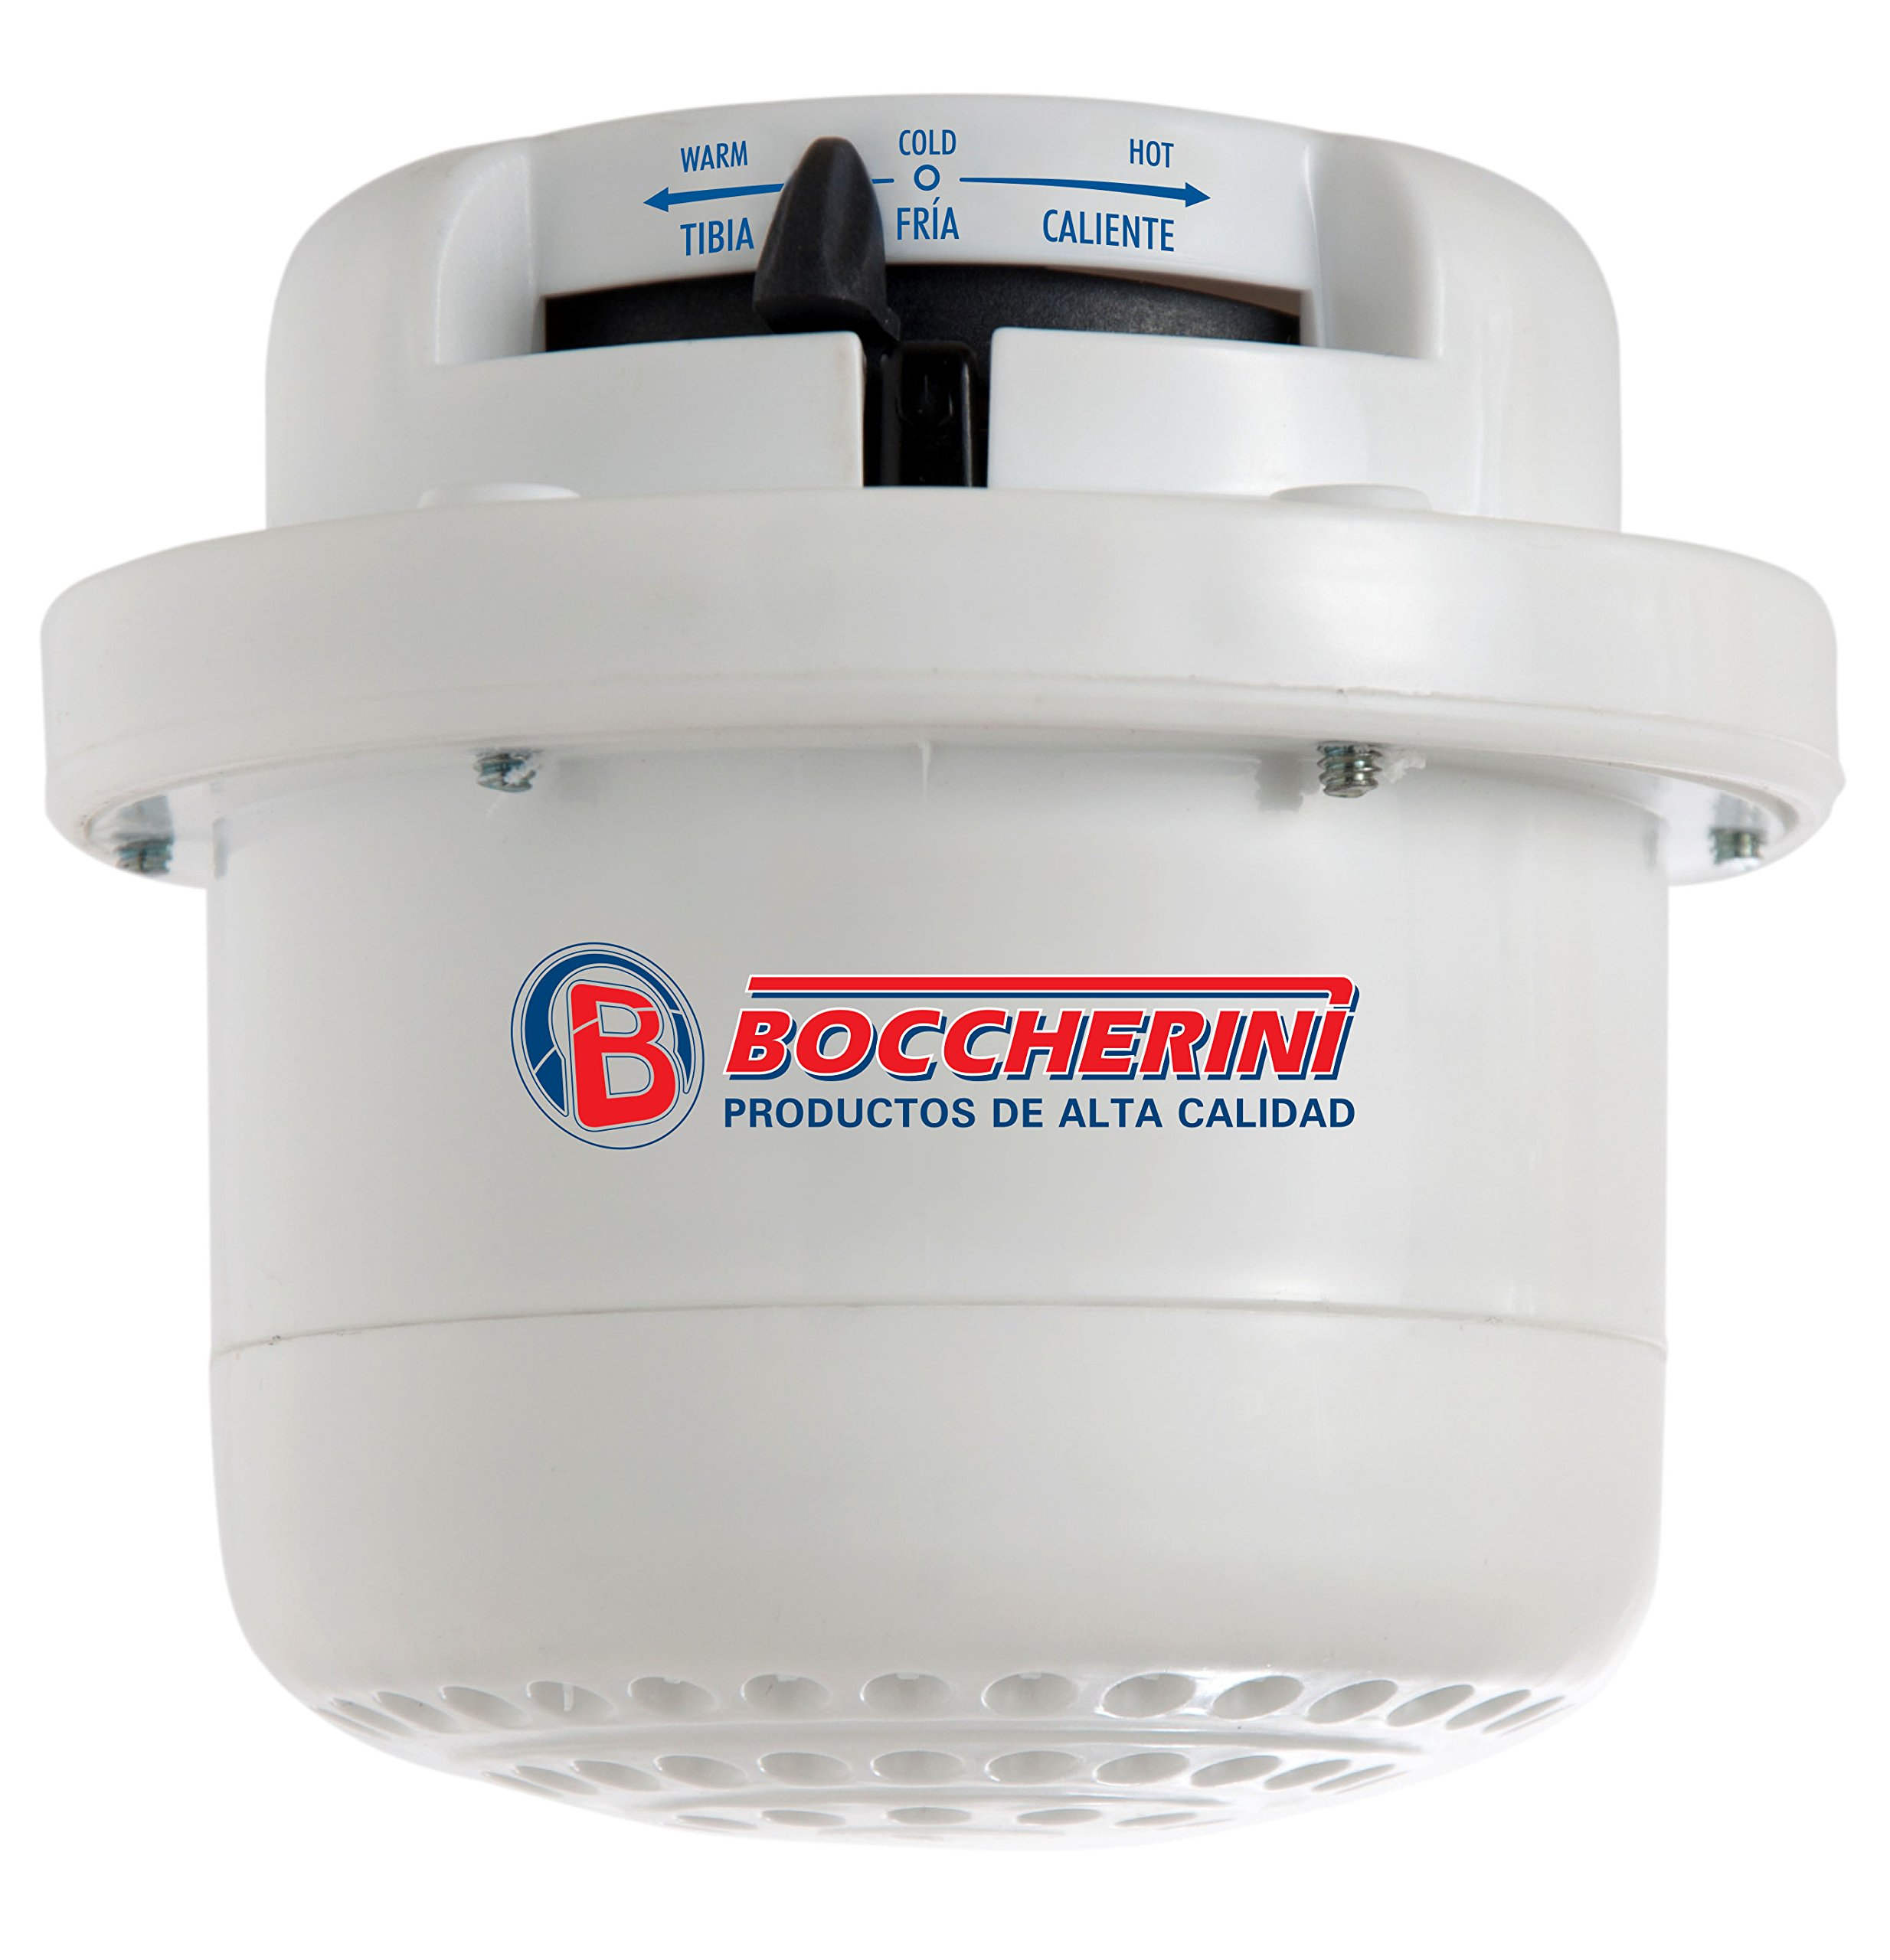 GARLAT Boccherini Electric Instant Hot Water Shower Head Heater 110V 120V Tankless + FREE wall support/tube Included